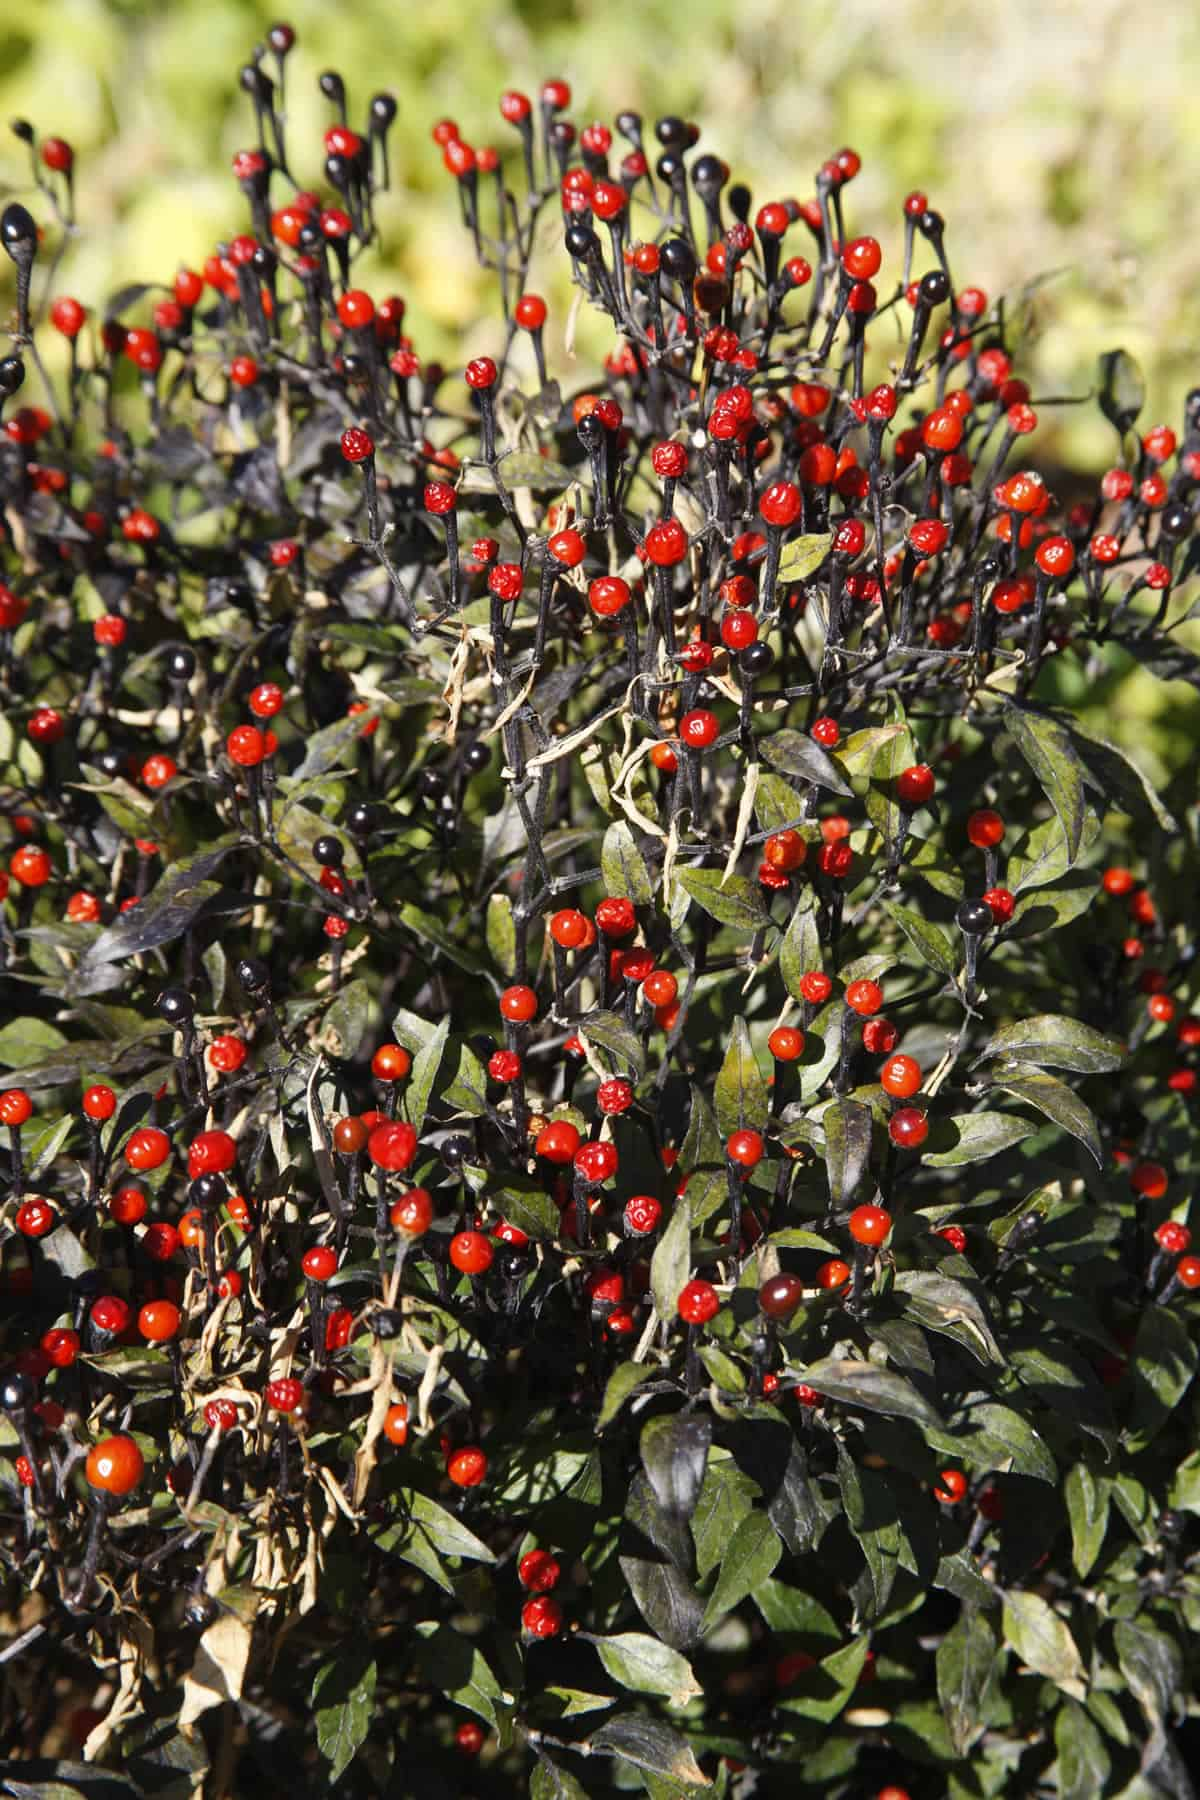 Chiltepin Peppers – Wild, Tiny U.S. Native Hot Peppers